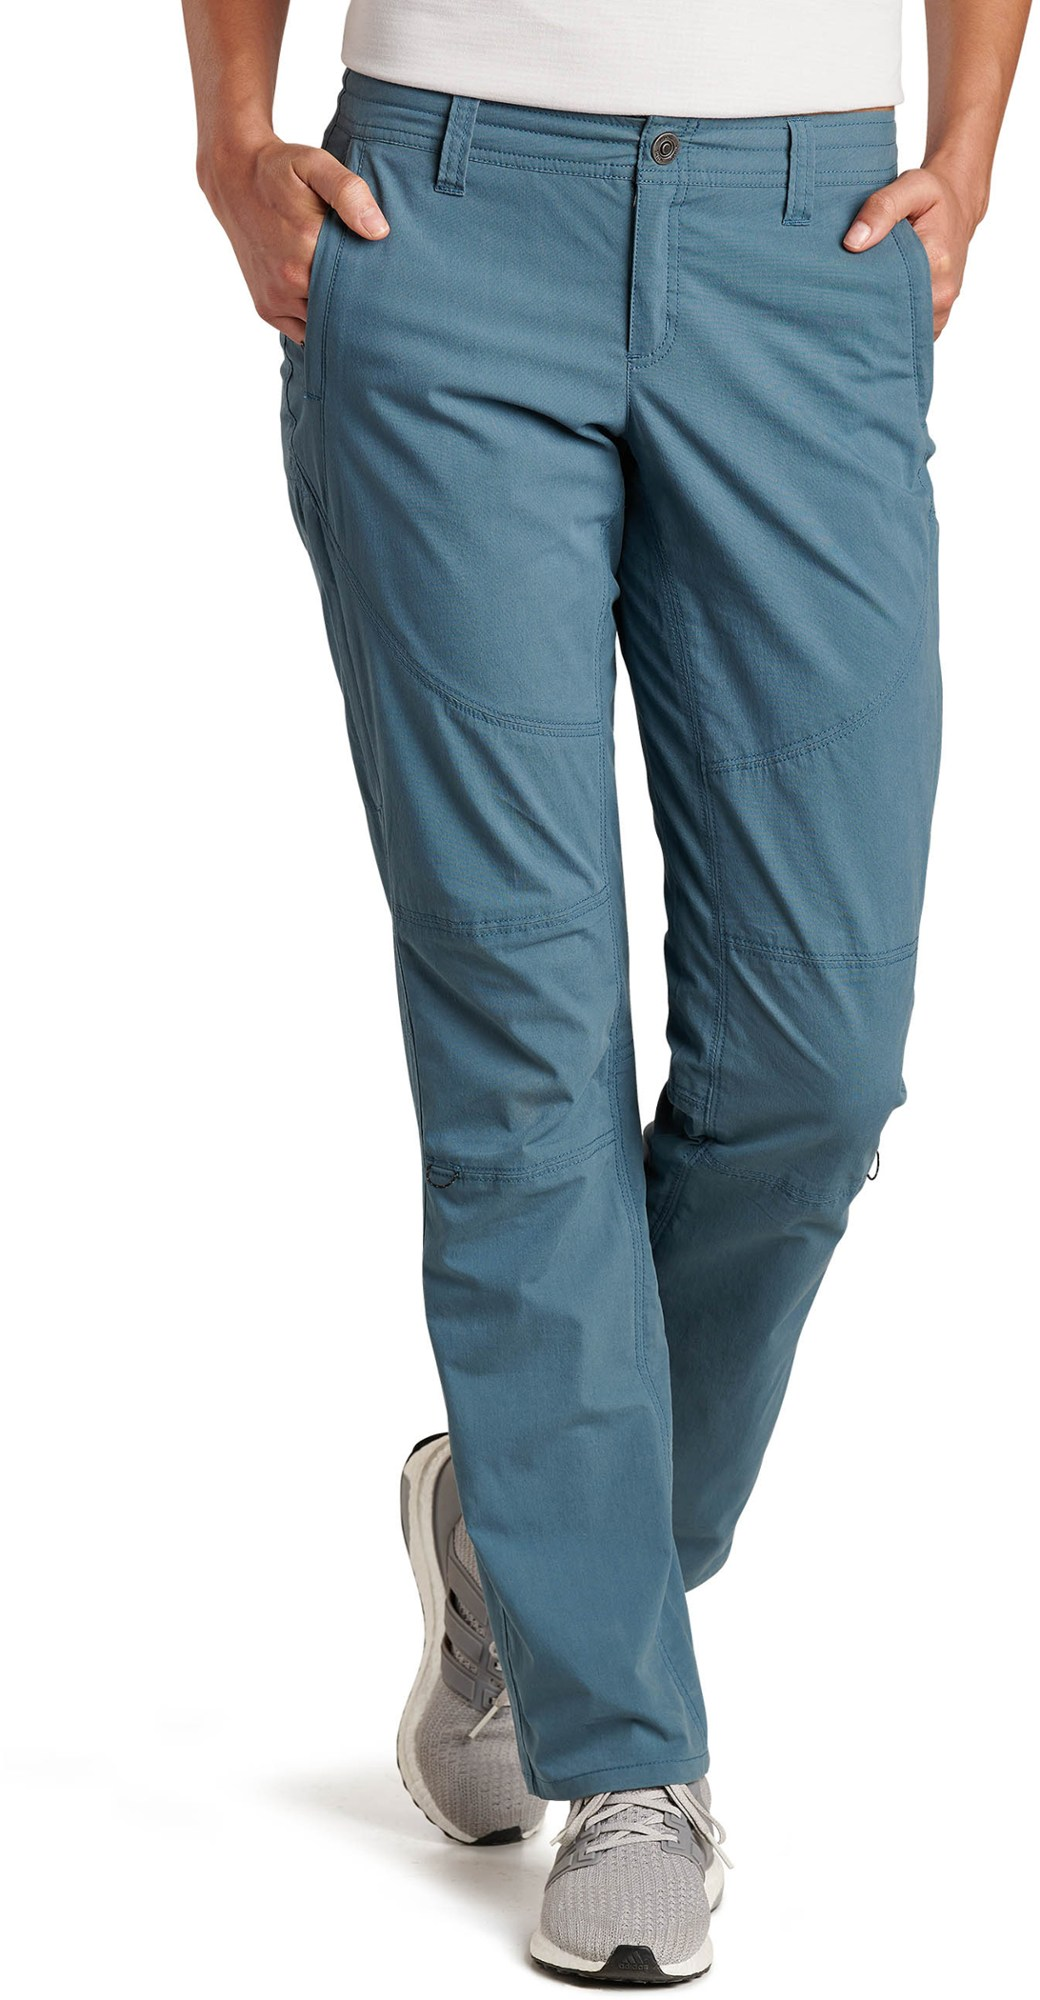 KUHL Spire Roll-Up Pants - Women's